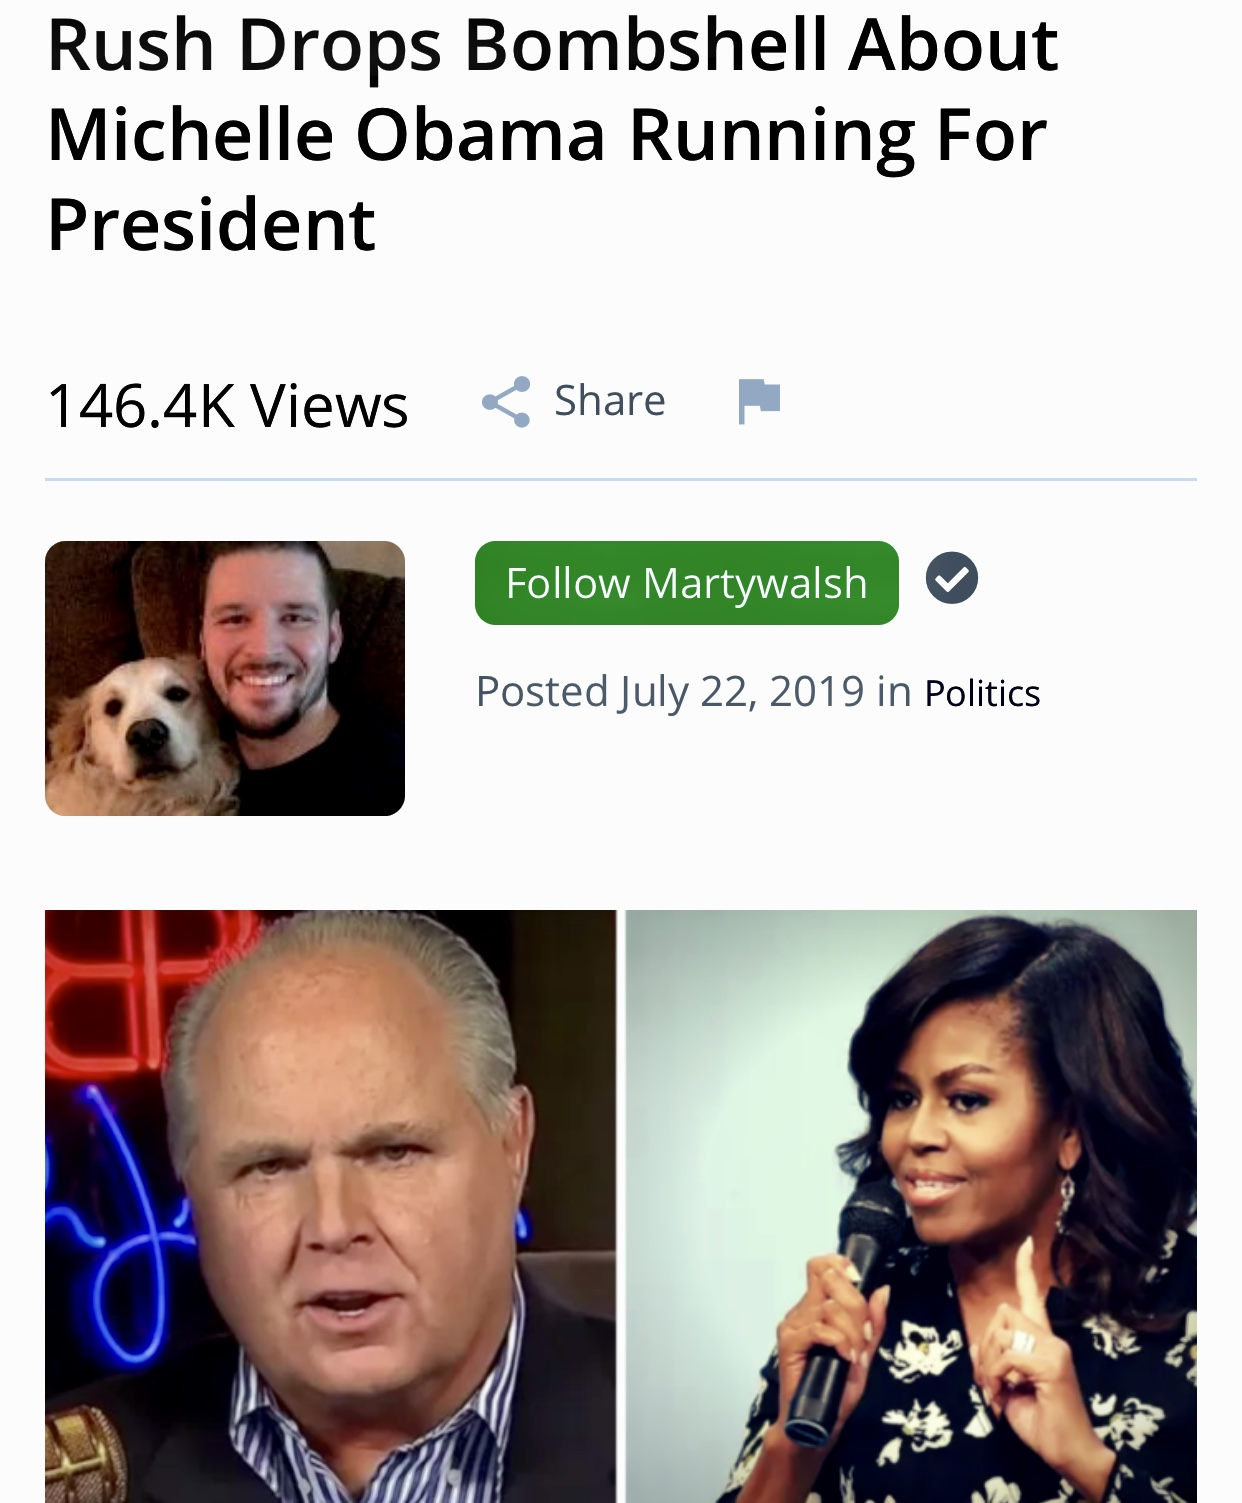 Rush Drops Bombshell About Michelle Obama Running For President